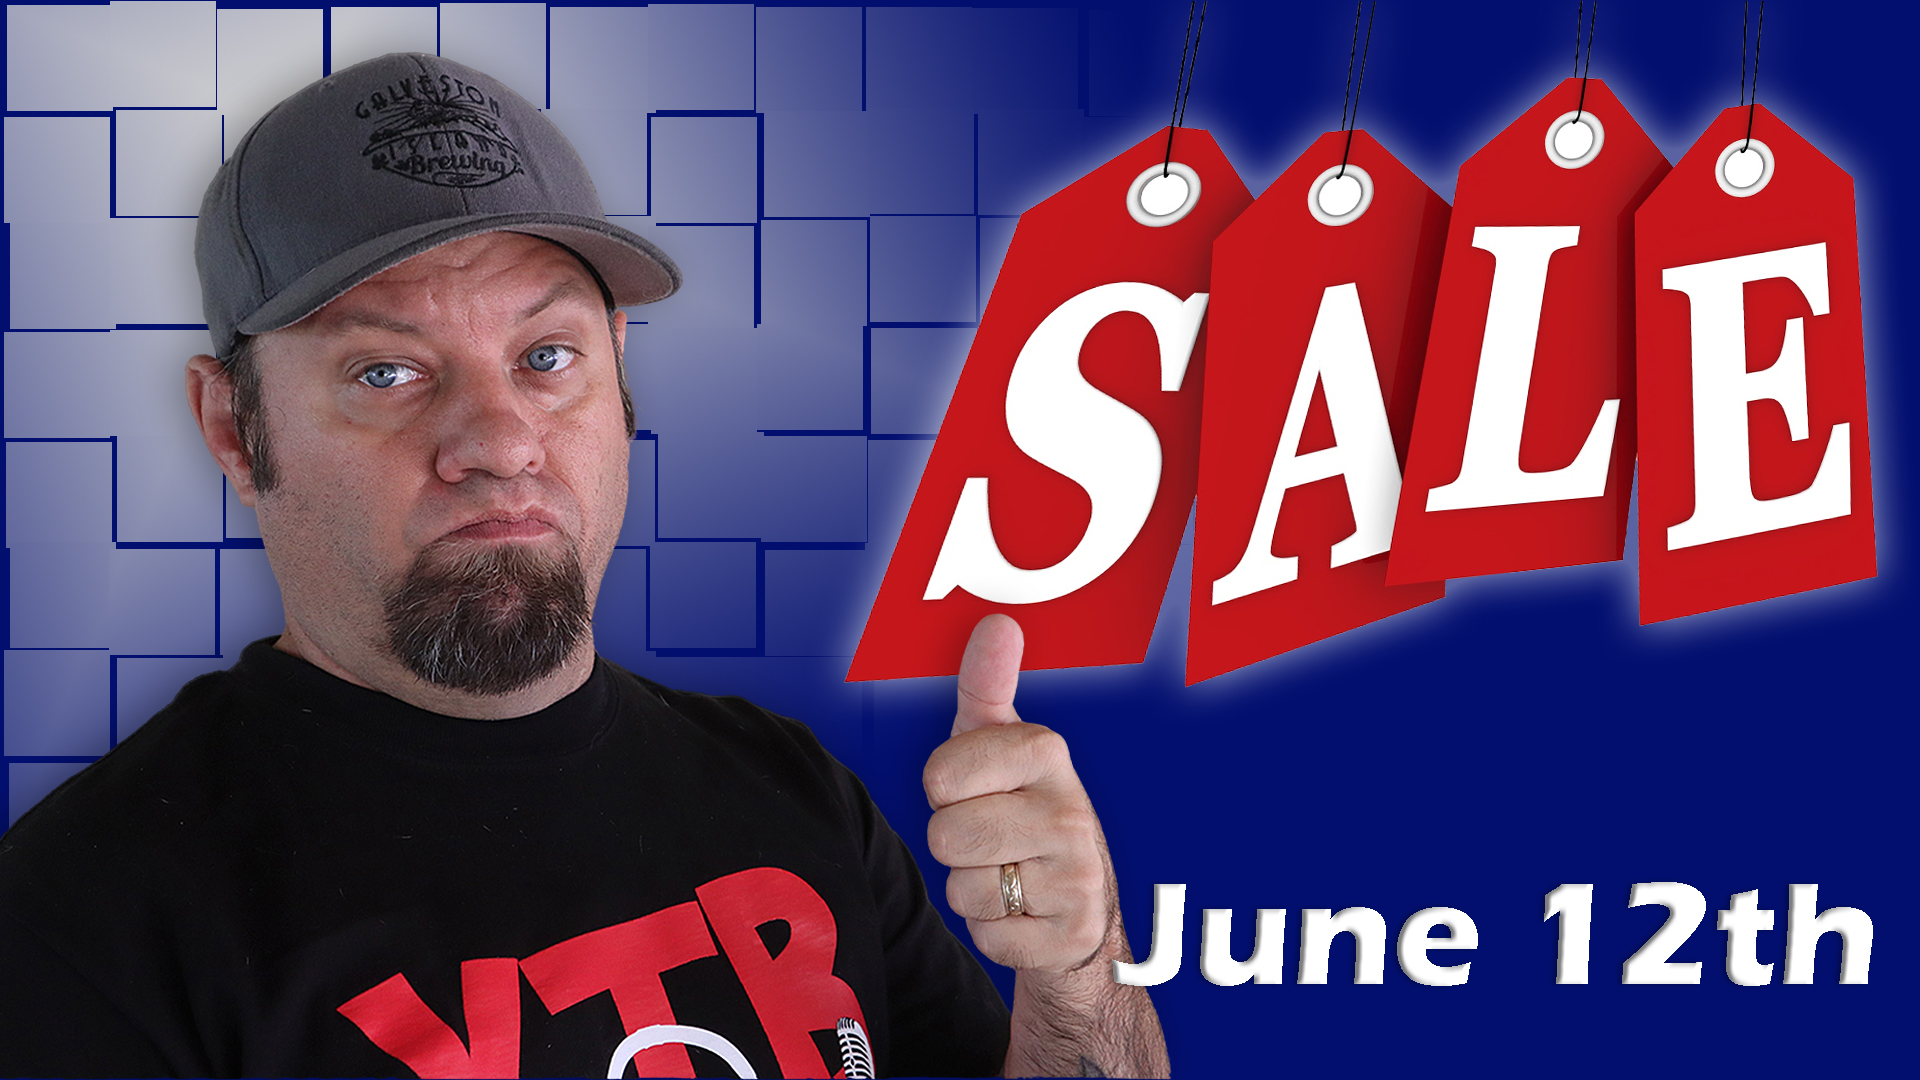 Episode 395: Ham Radio Shopping Deals for June 12 | Father's Day Deals